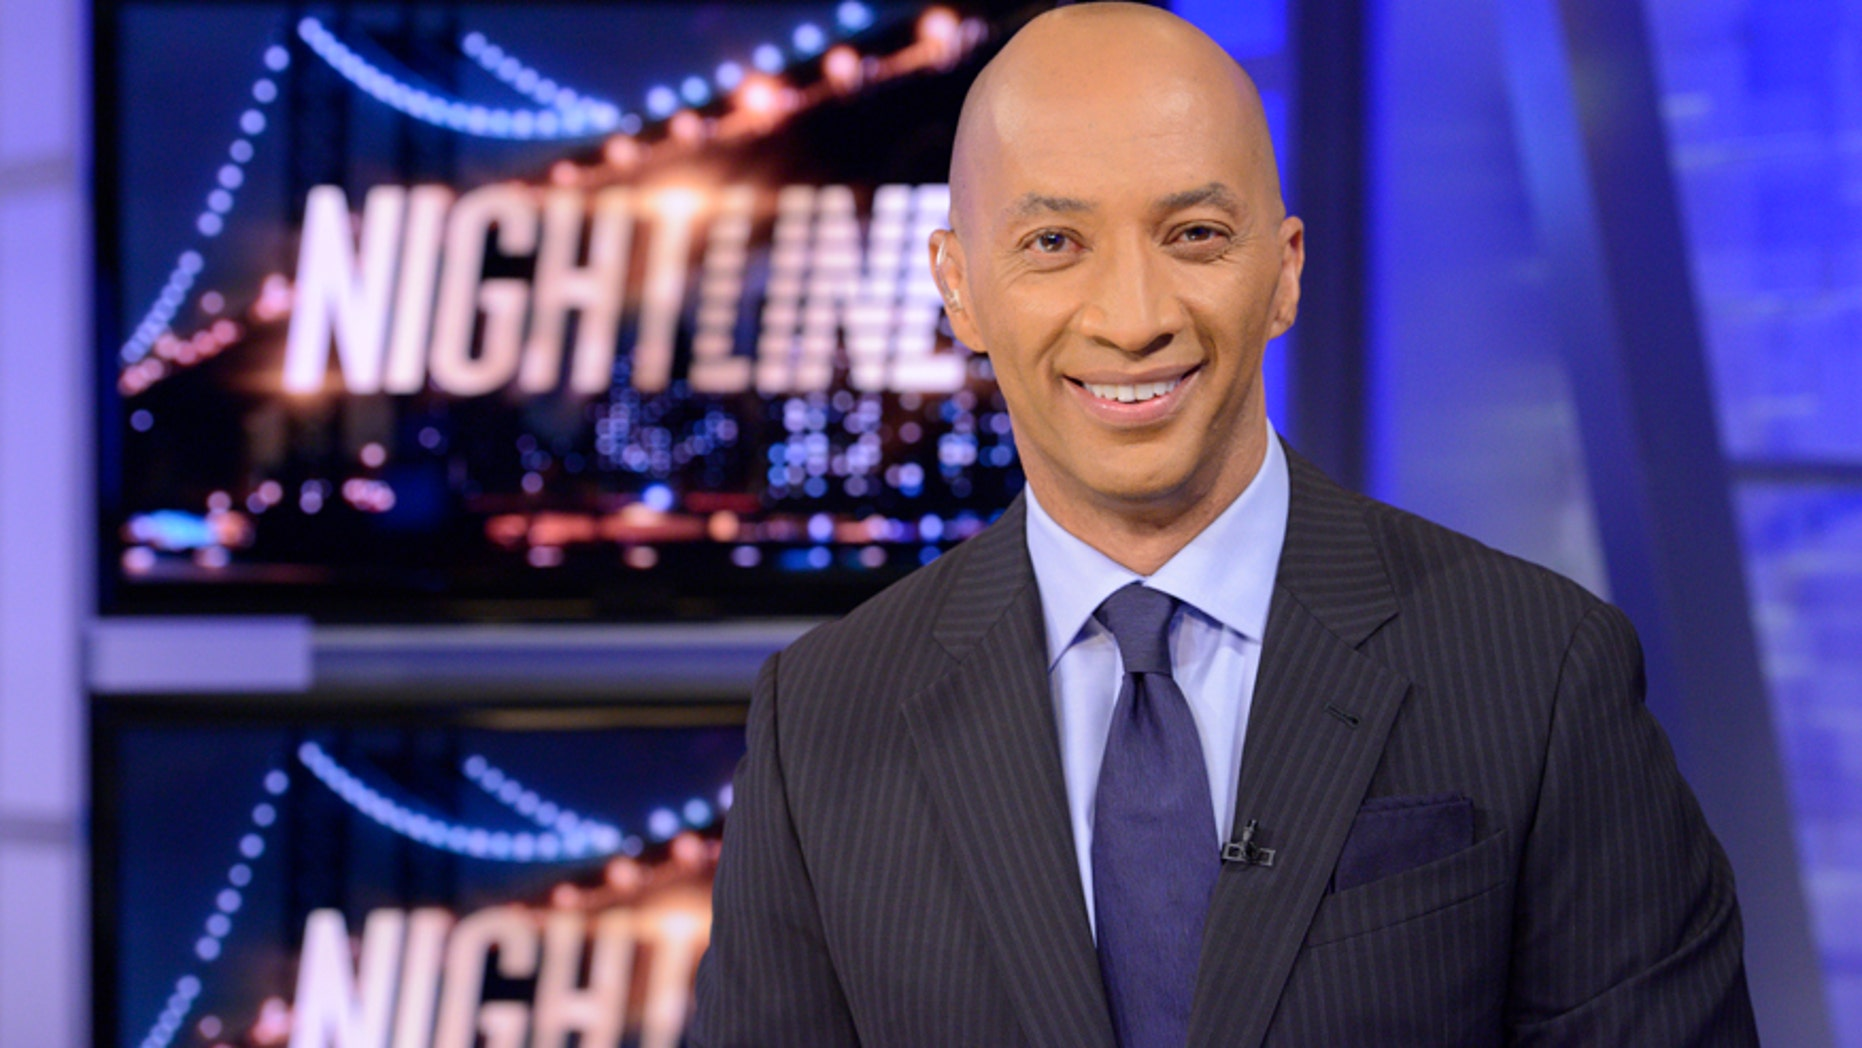 """In this image released by ABC, ABC News' chief national correspondent Byron Pitts appears on the set of """"Nightline,"""" in New York."""